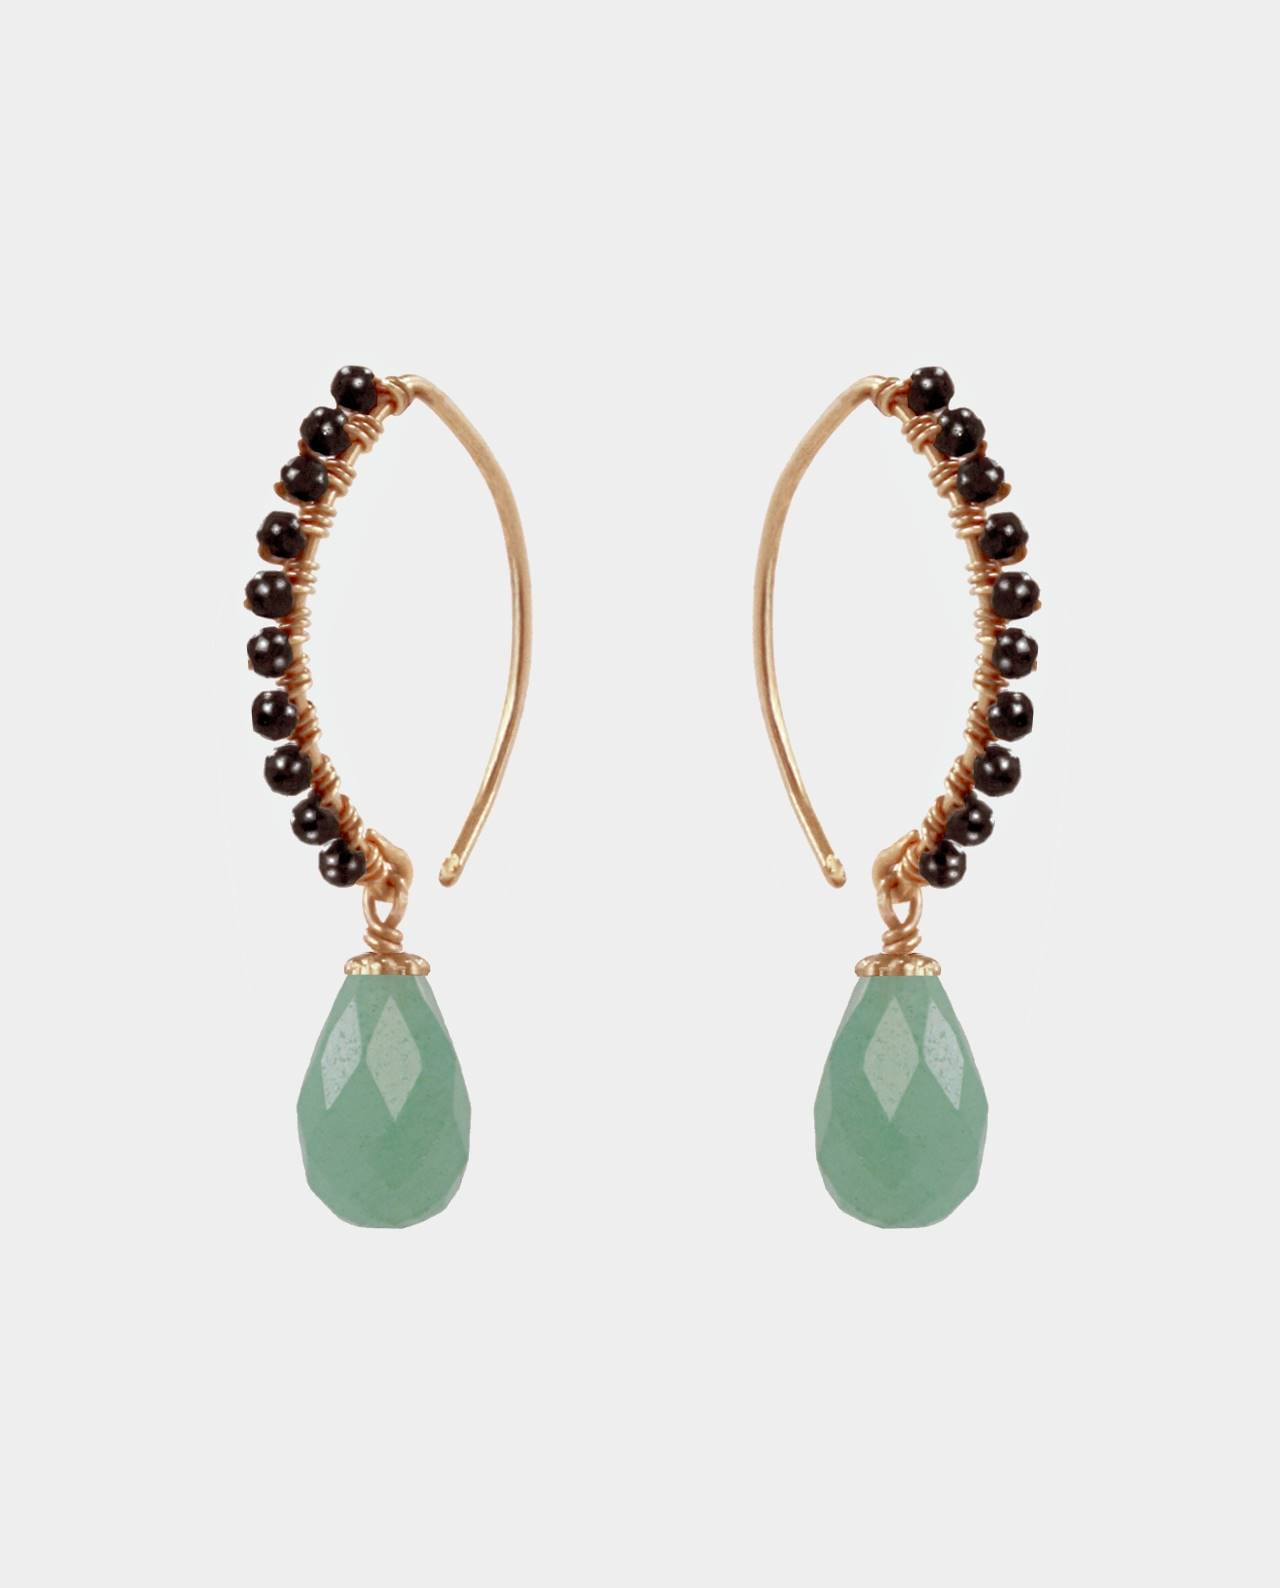 Handmade aventurine earrings with curved ear hook attached to bevelled black spinel gemstones